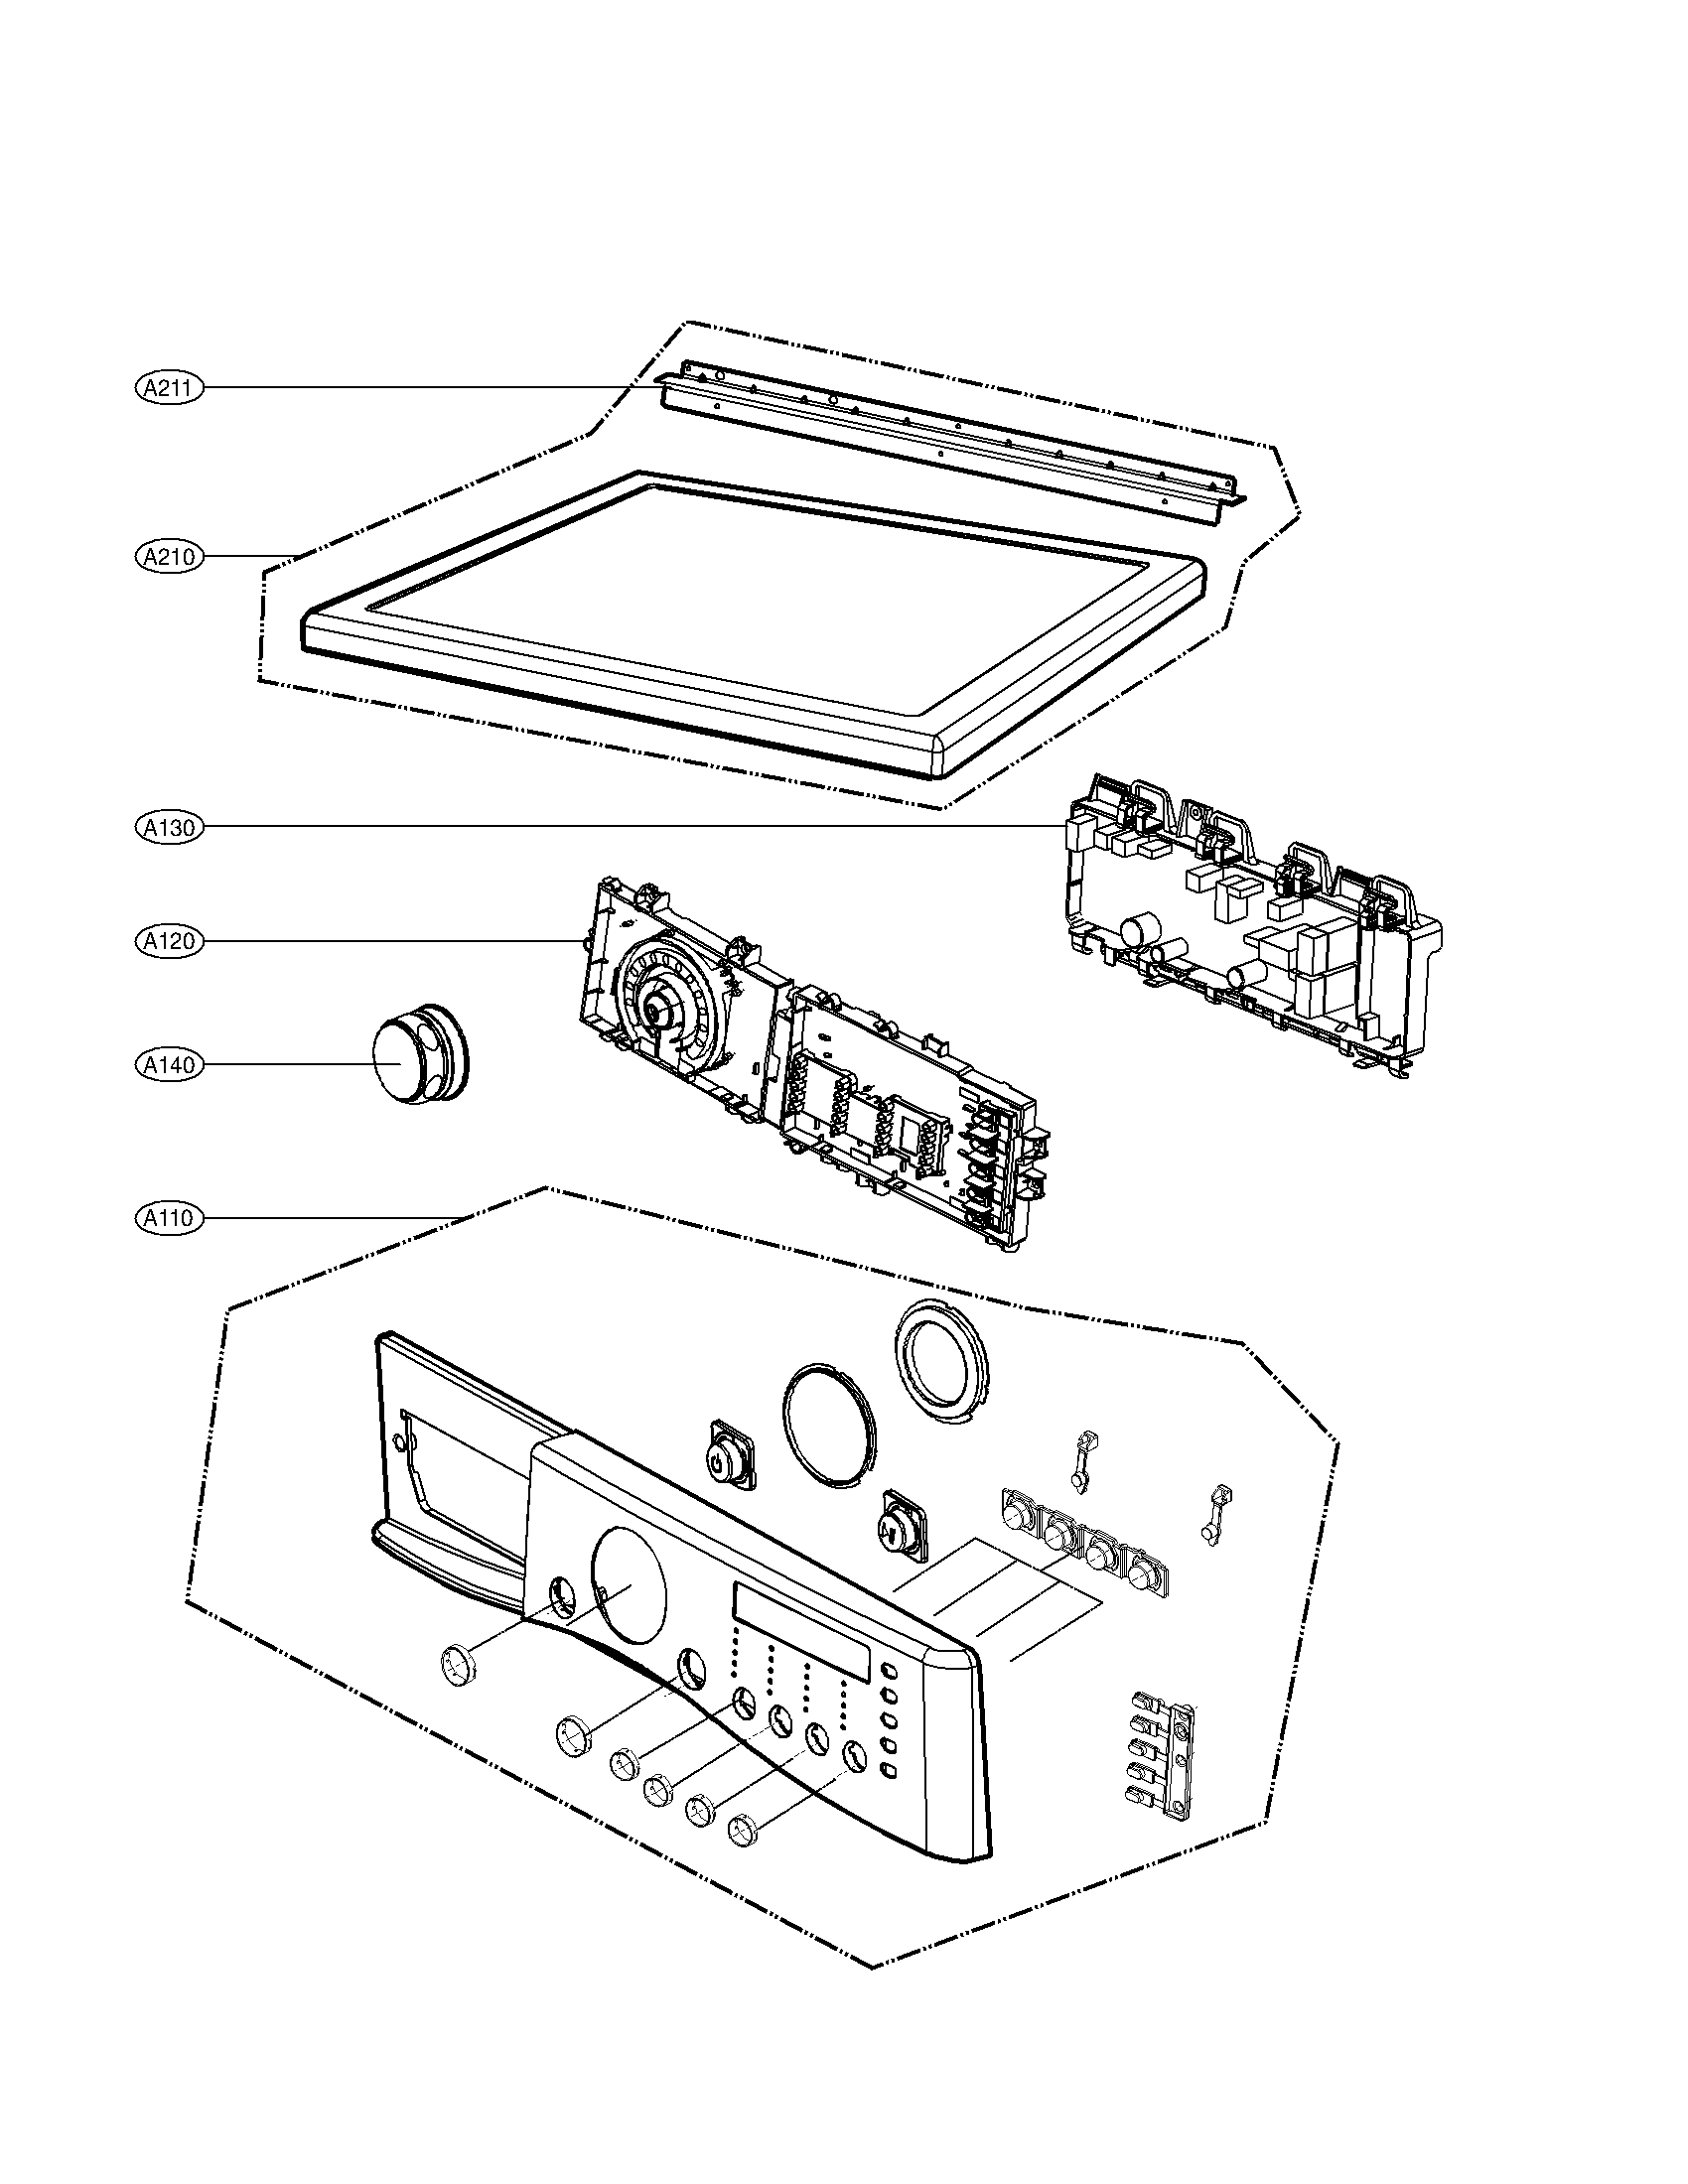 LG DLEX3360V control panel and plate assembly parts diagram